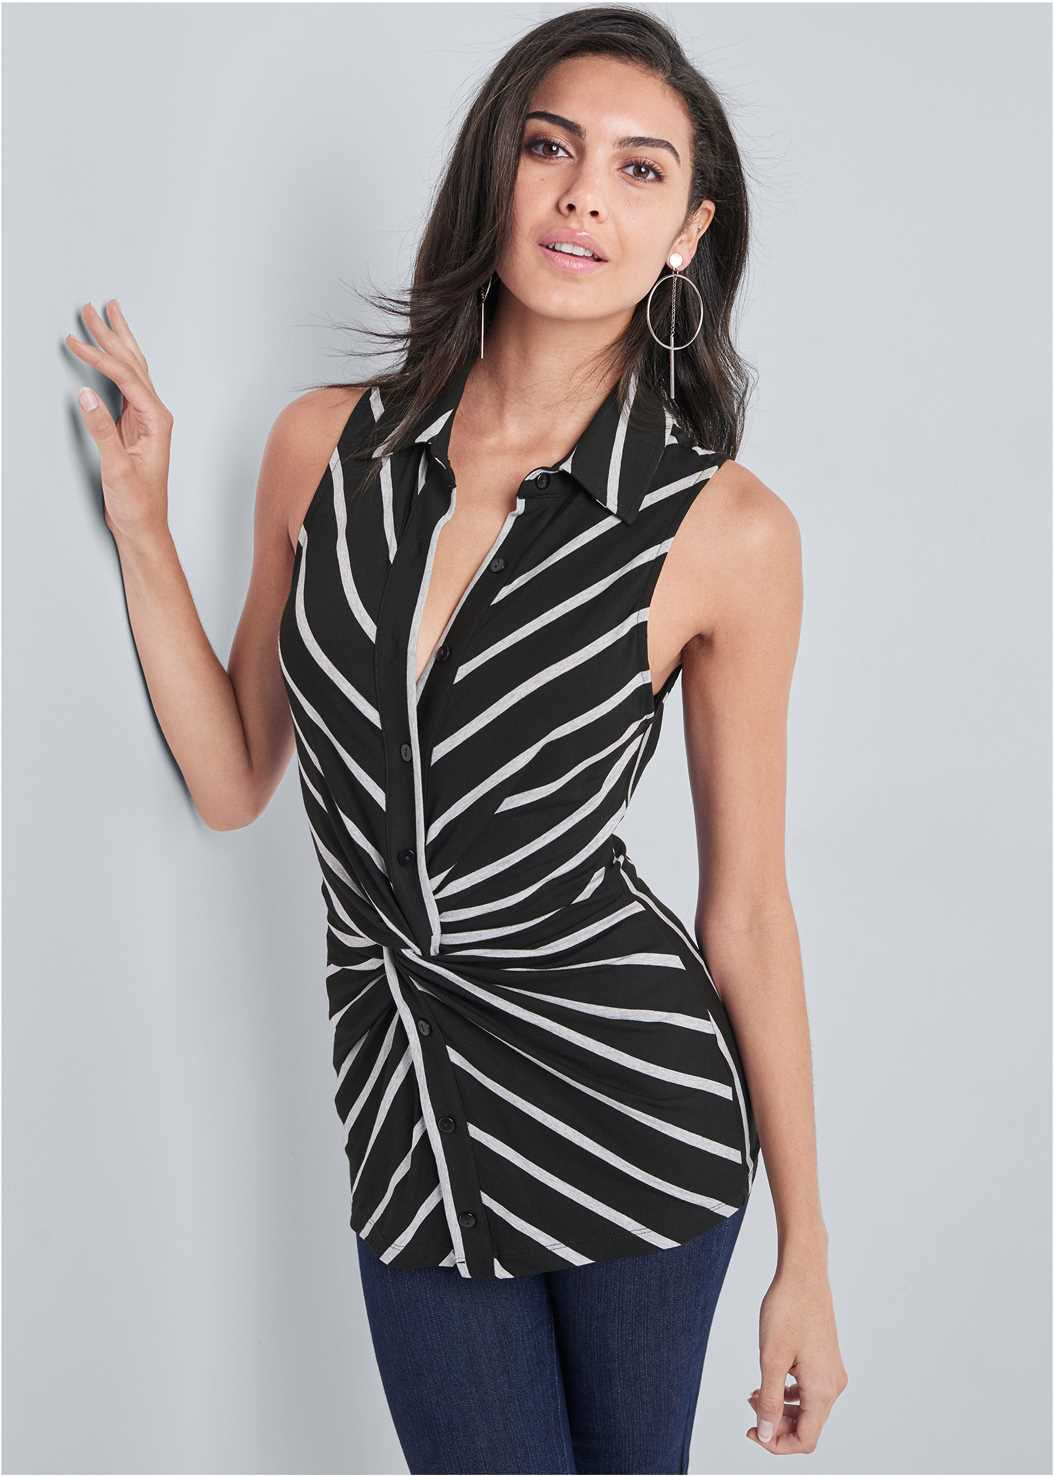 Striped Knot Twist Top,Mid Rise Slimming Stretch Jeggings,High Heel Strappy Sandals